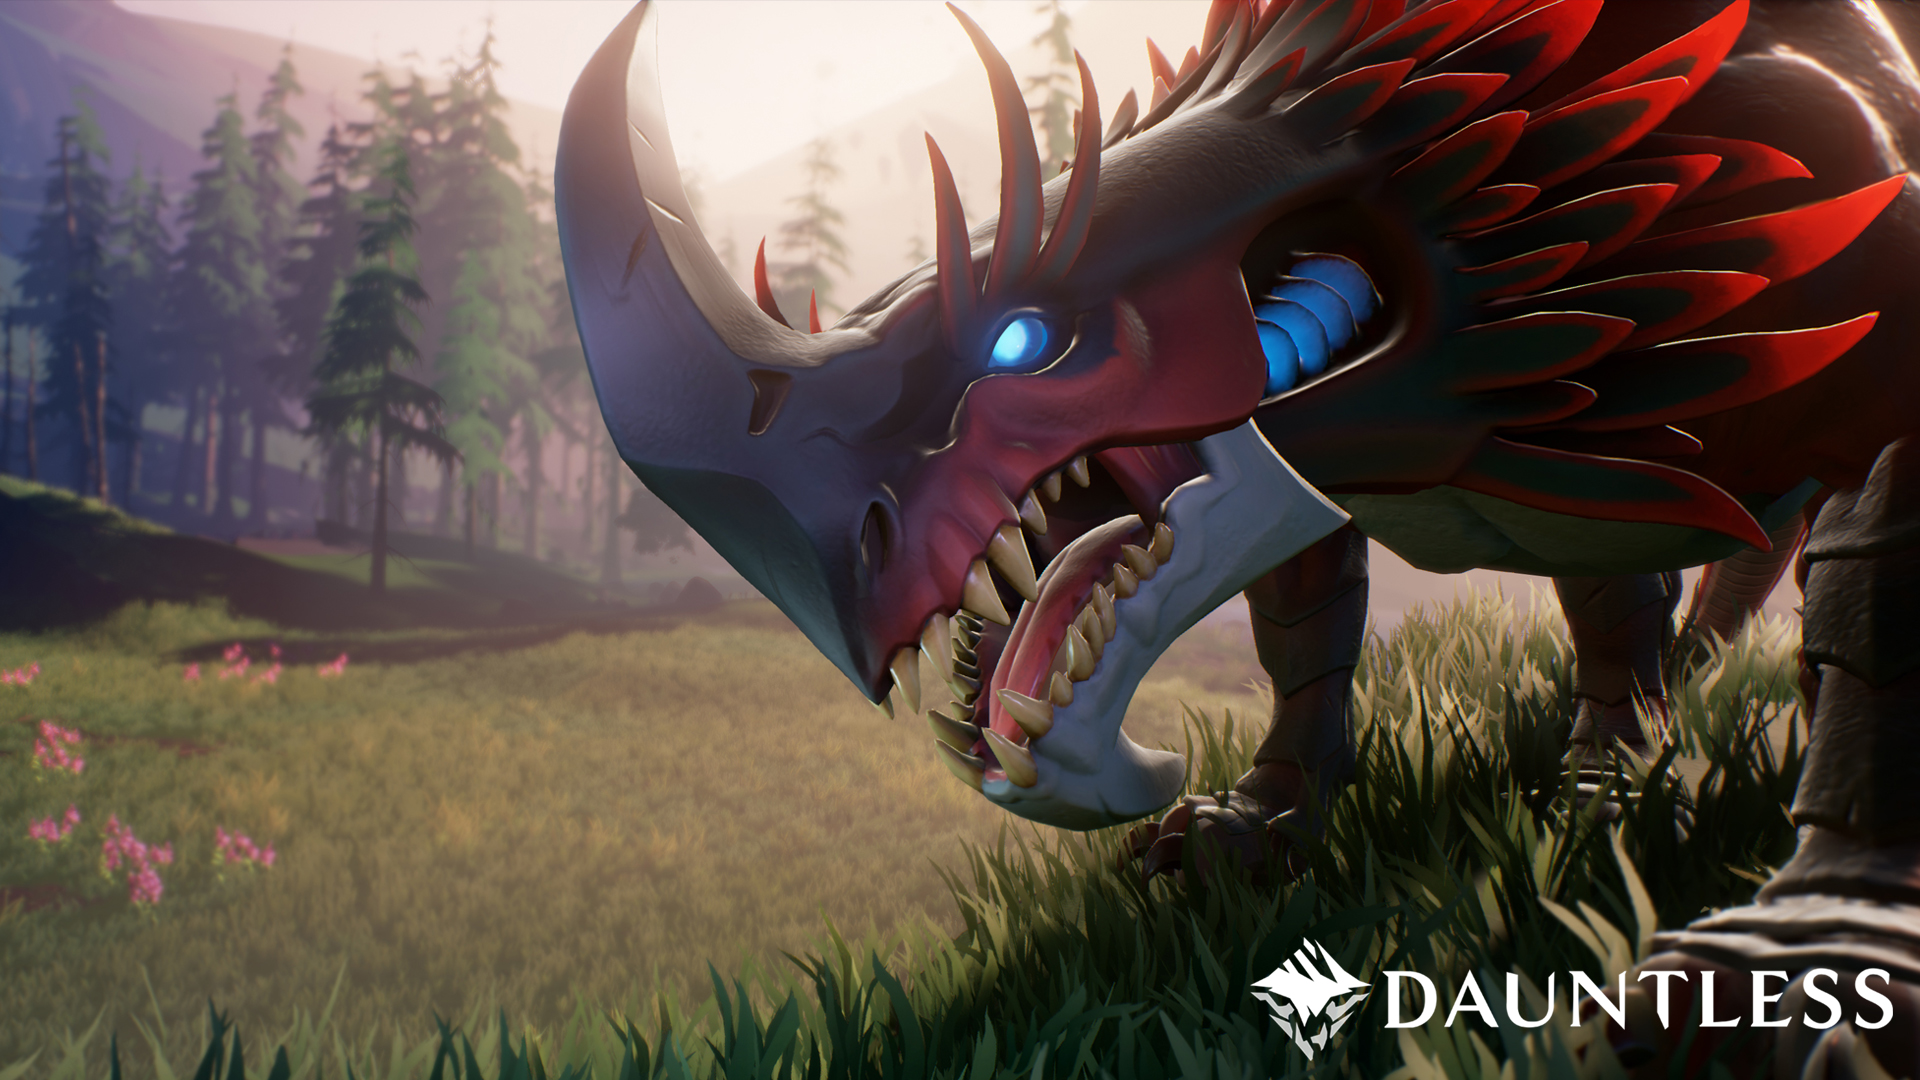 Dauntless PAX East Hands-on & Interview - Hunting Monsters with Your